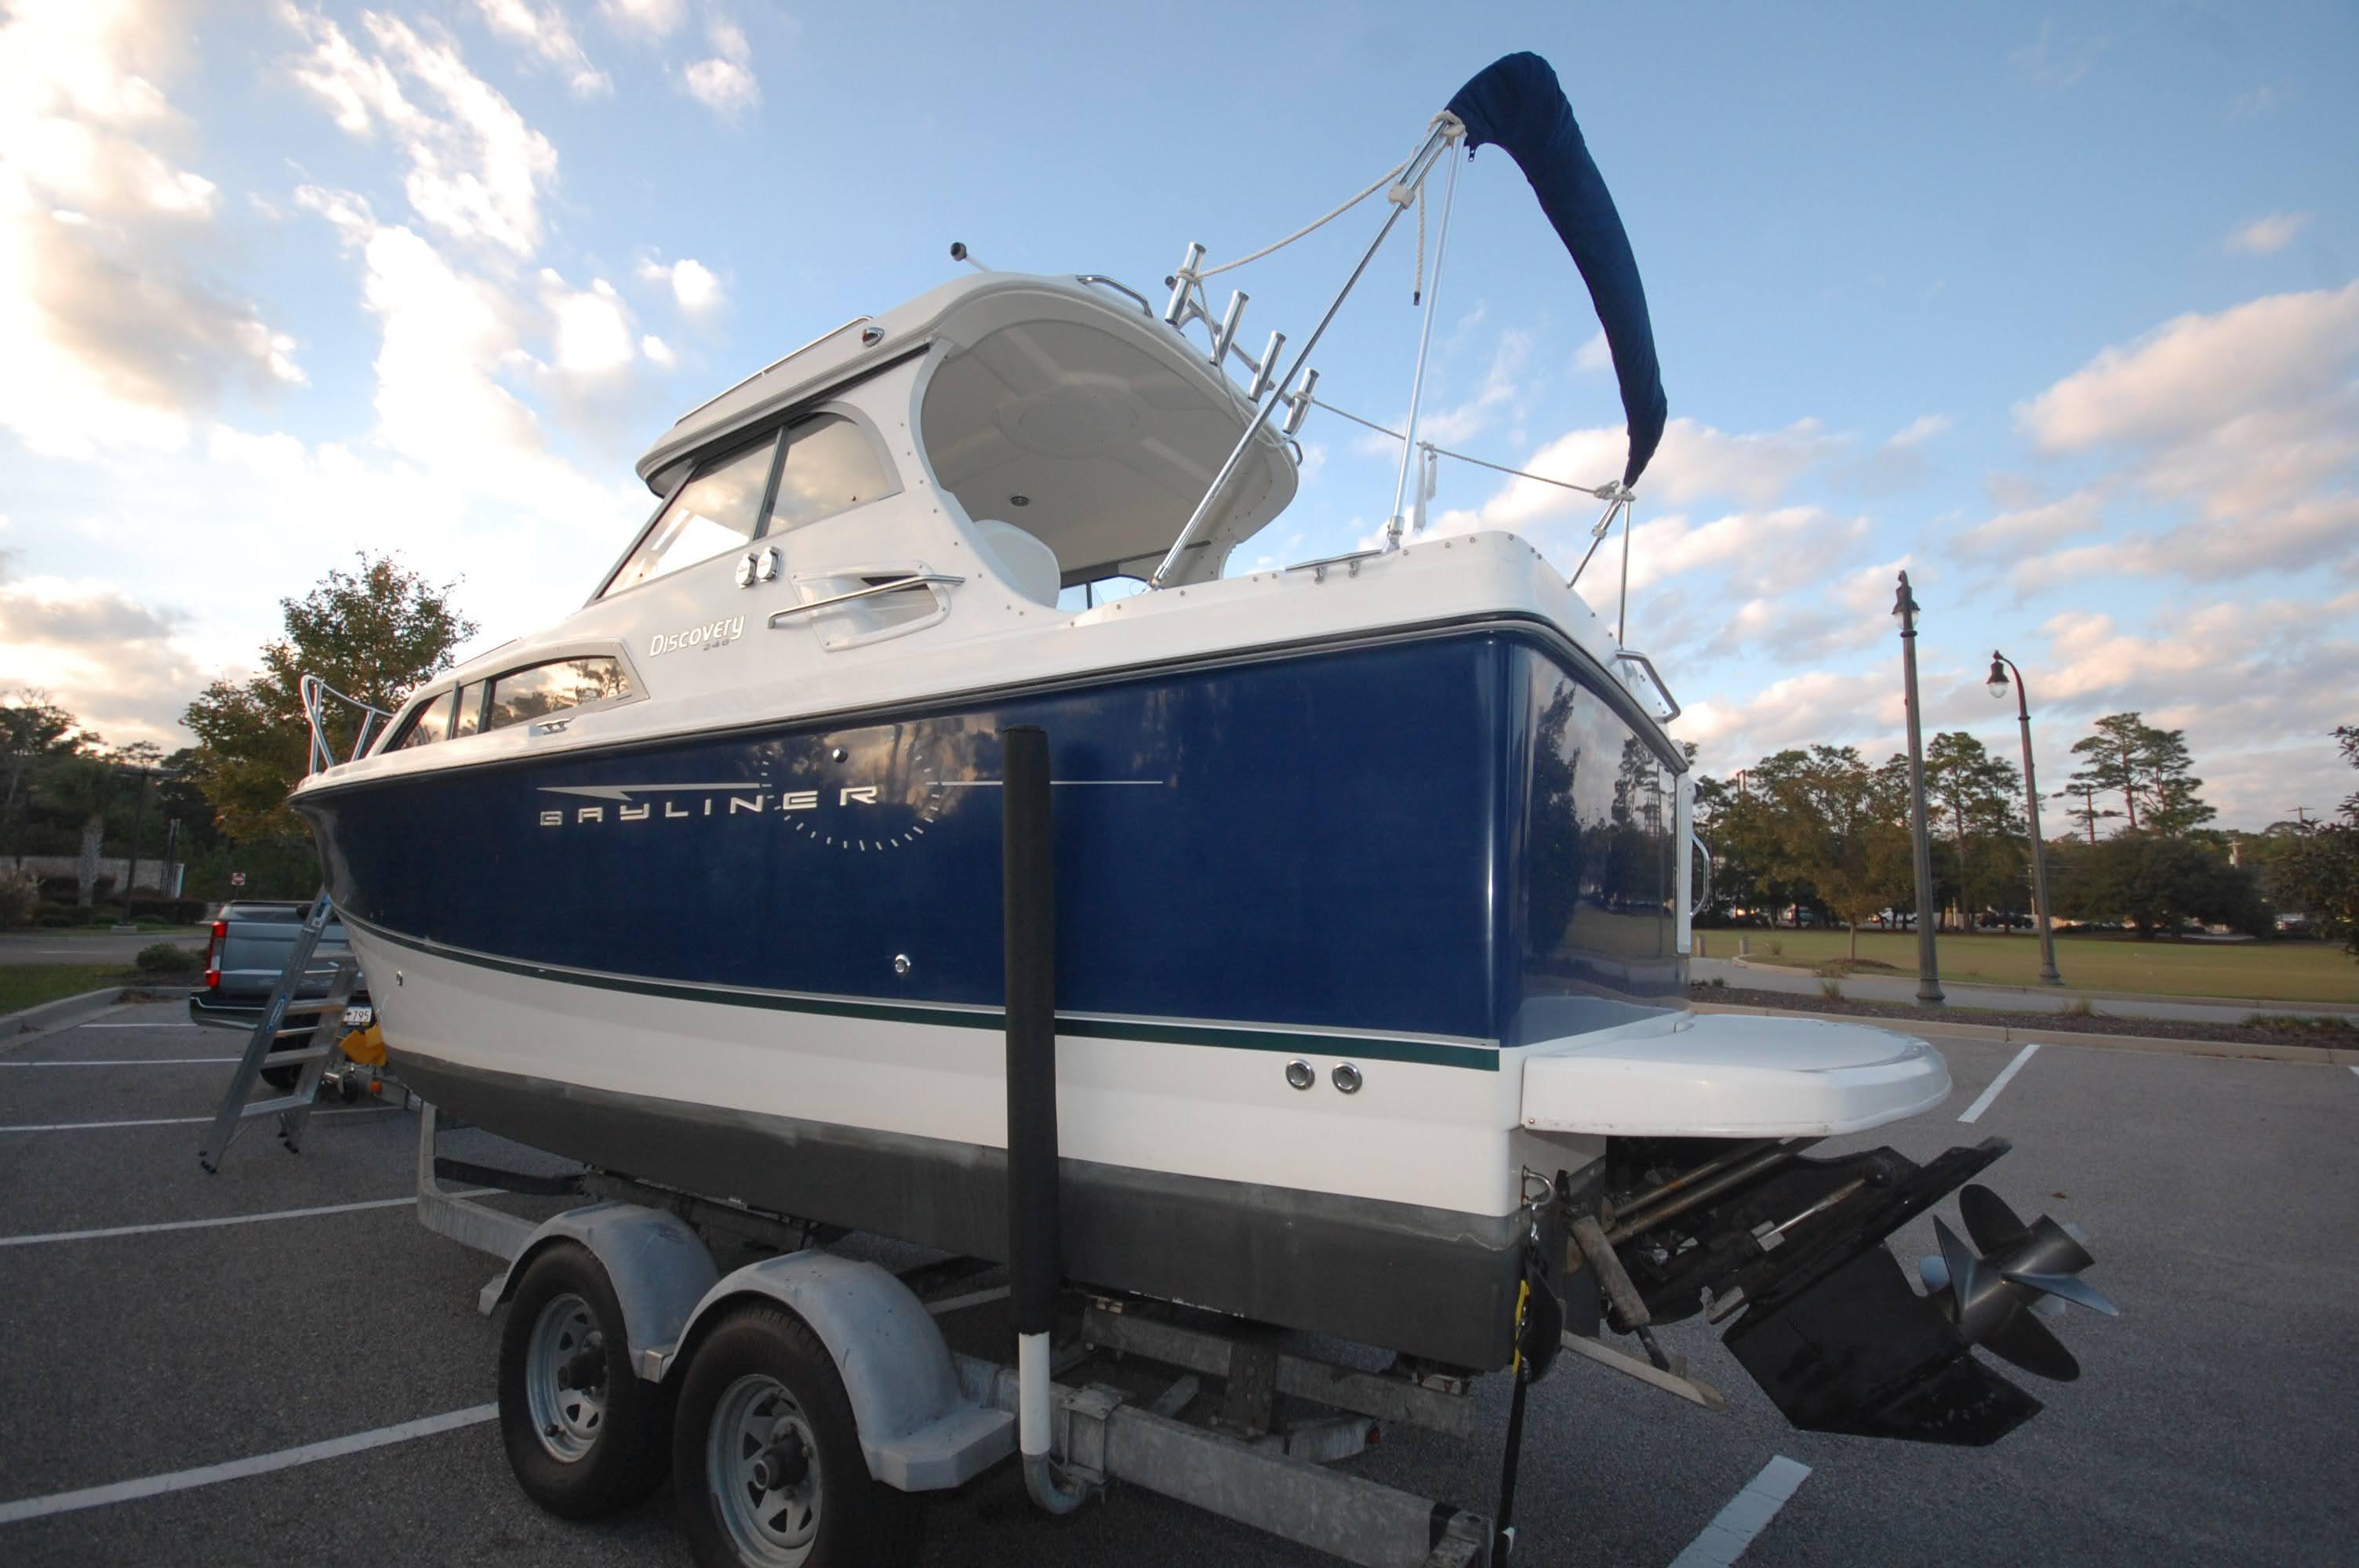 SC 5808 EE Knot 10 Yacht Sales